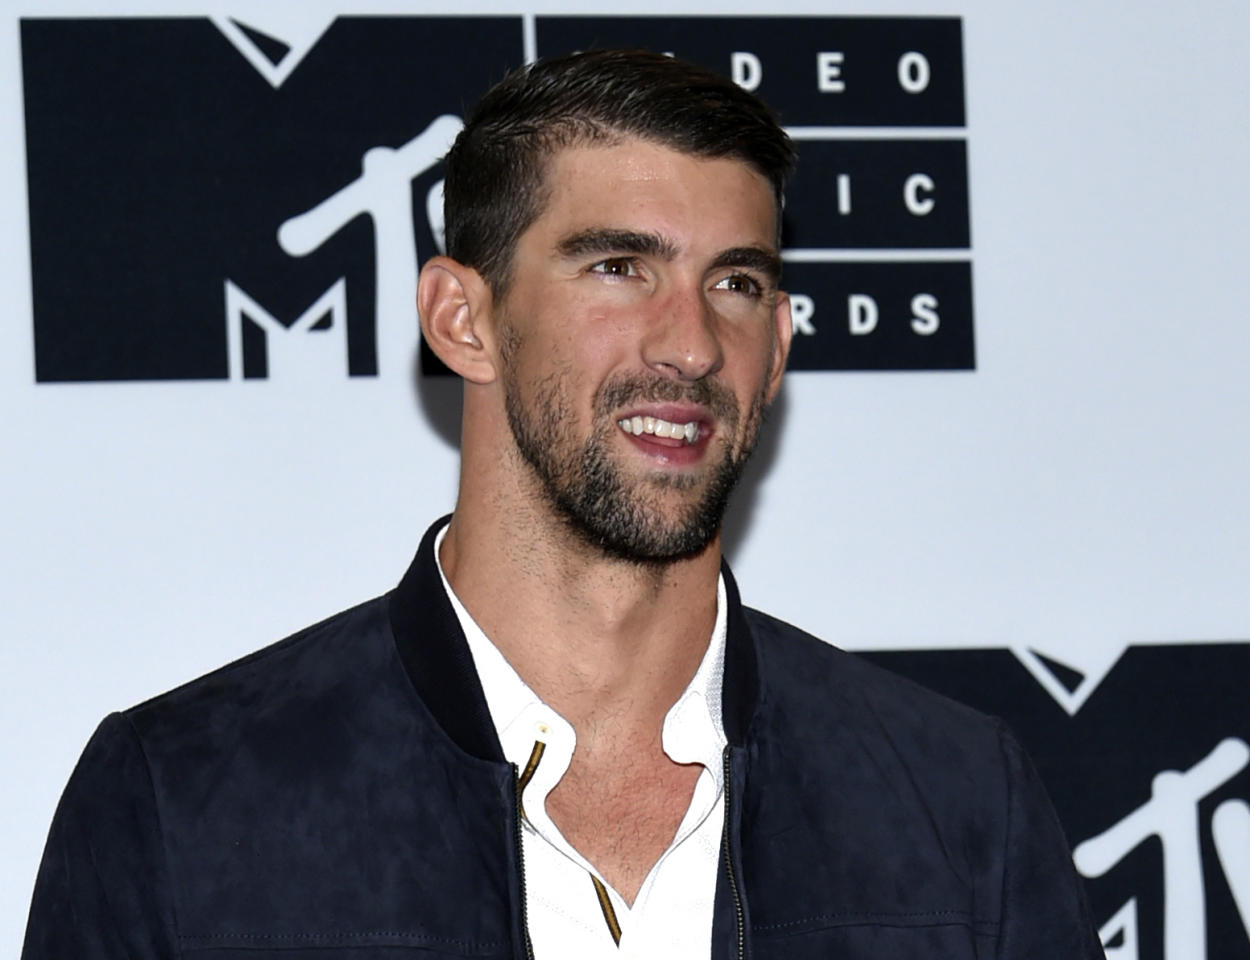 """FILE - In this Aug. 28, 2016 file photo, Michael Phelps poses in the press room at the MTV Video Music Awards in New York. Phelps will be named Sports Illustrated's """"Person of the Year"""" at a ceremony on Monday, Dec. 12. (Photo by Evan Agostini/Invision/AP, File)"""